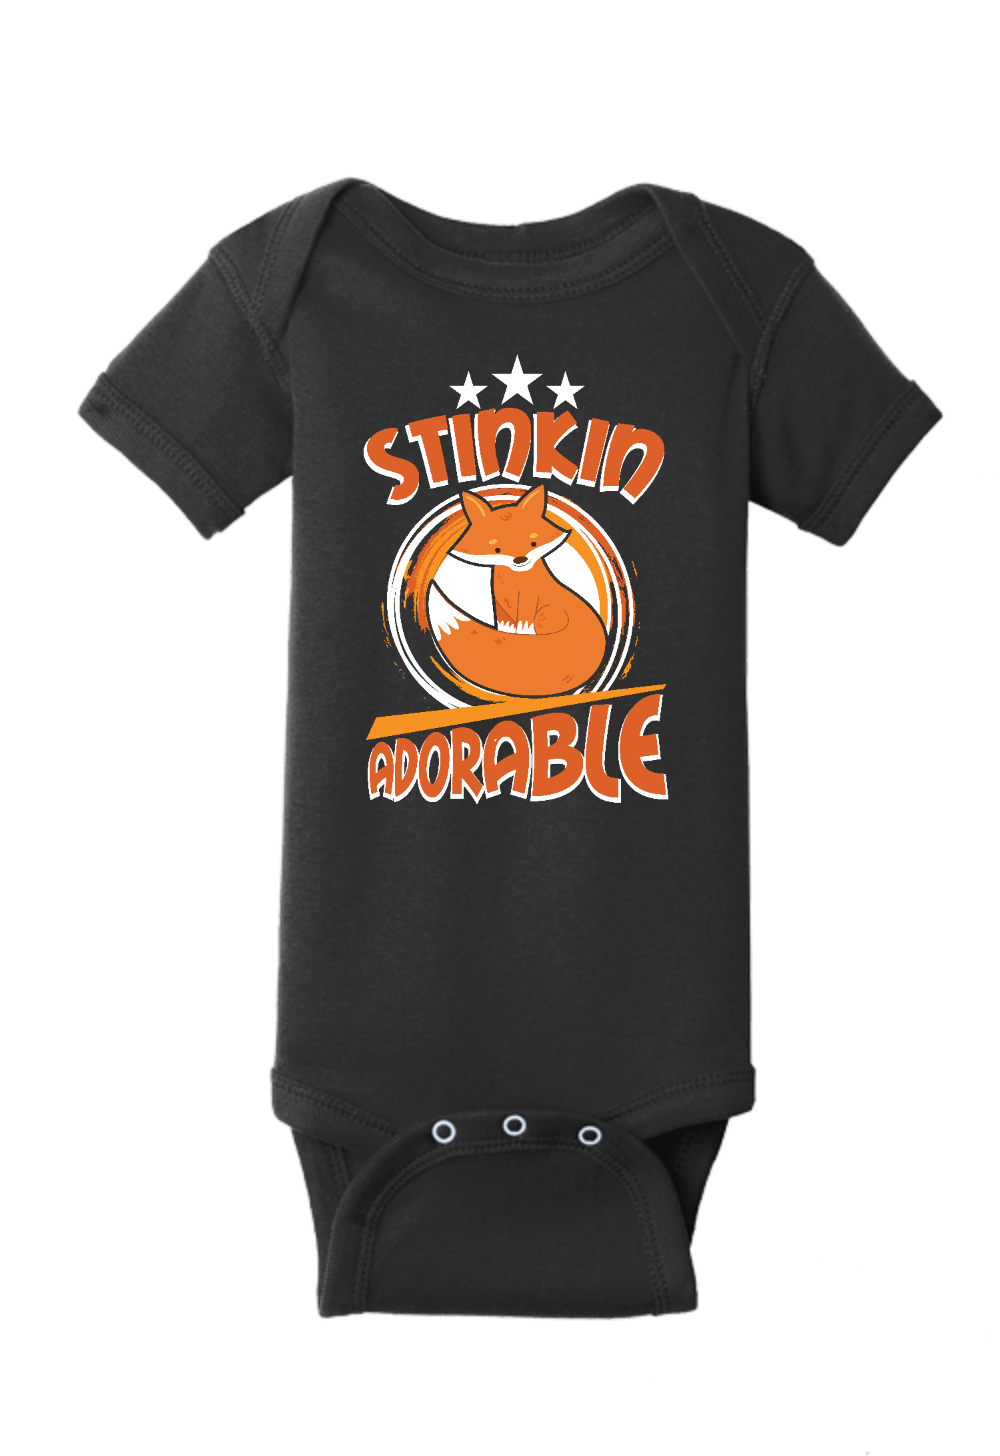 Stinking Adorable Onesie